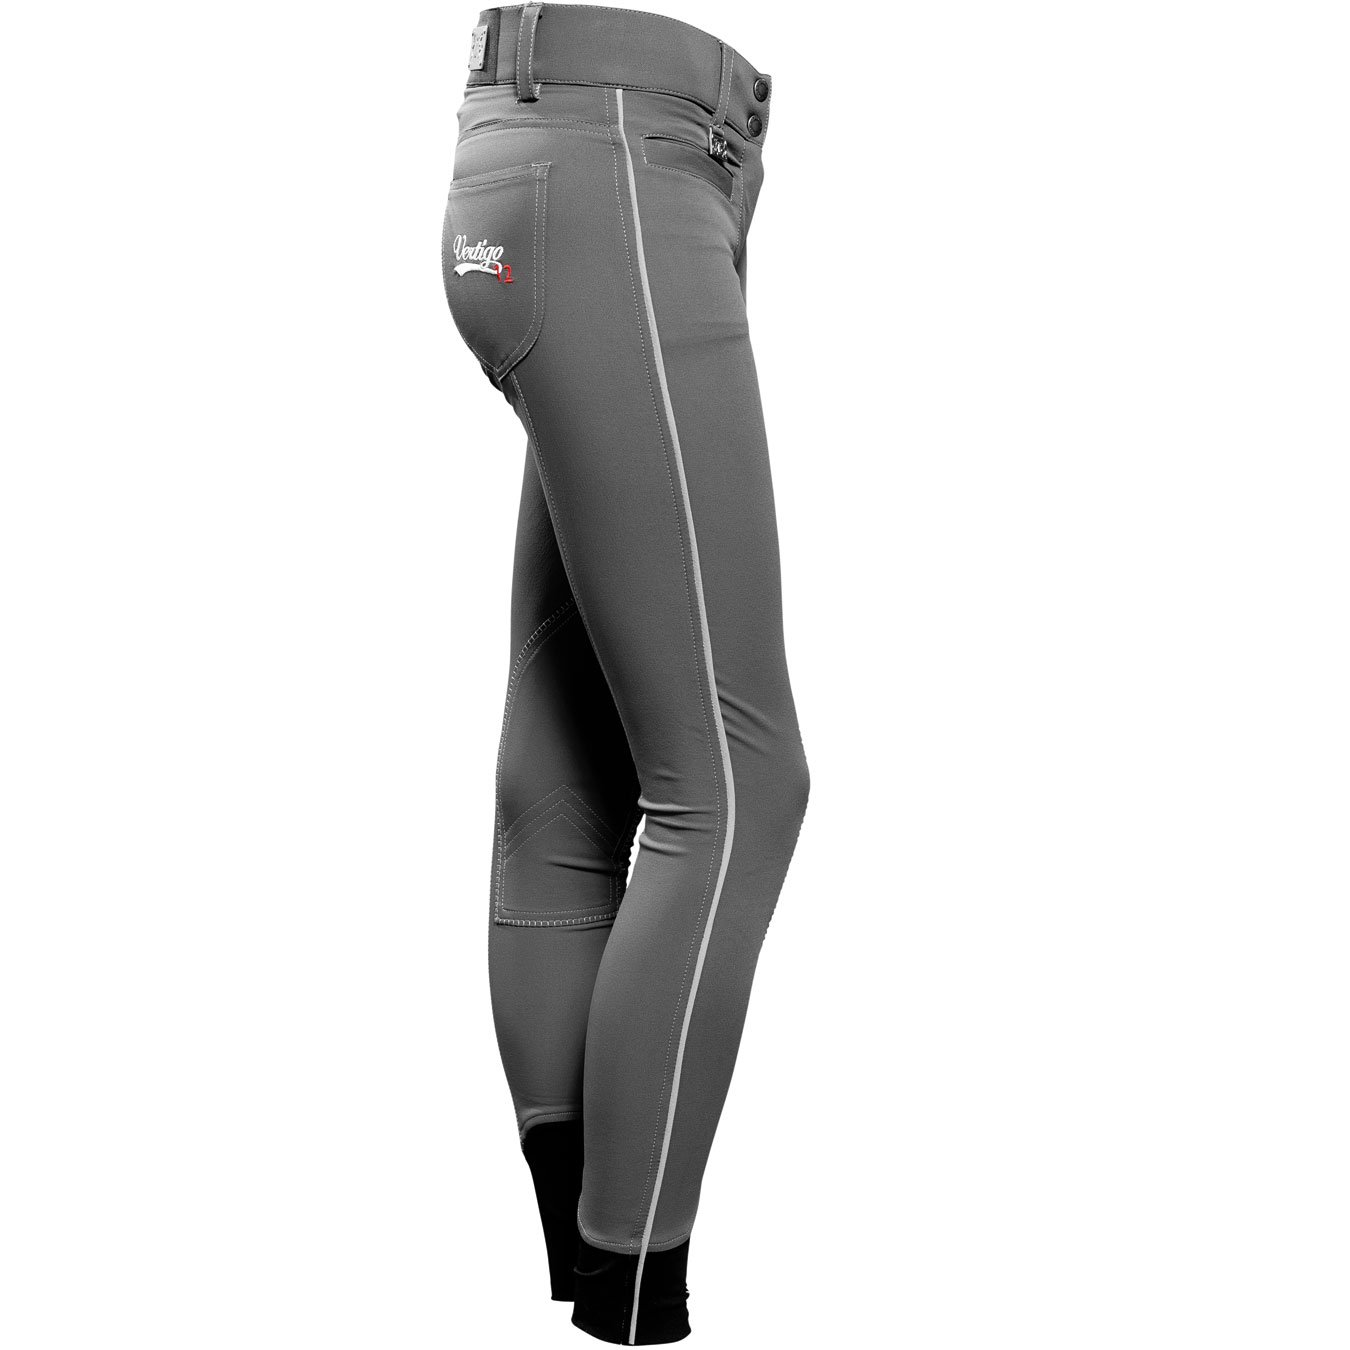 FUSIAN GREY 26 FUSIAN GREY 26 B-greenigo Horze KIMBERLY Ladies' Full Seat Breeches